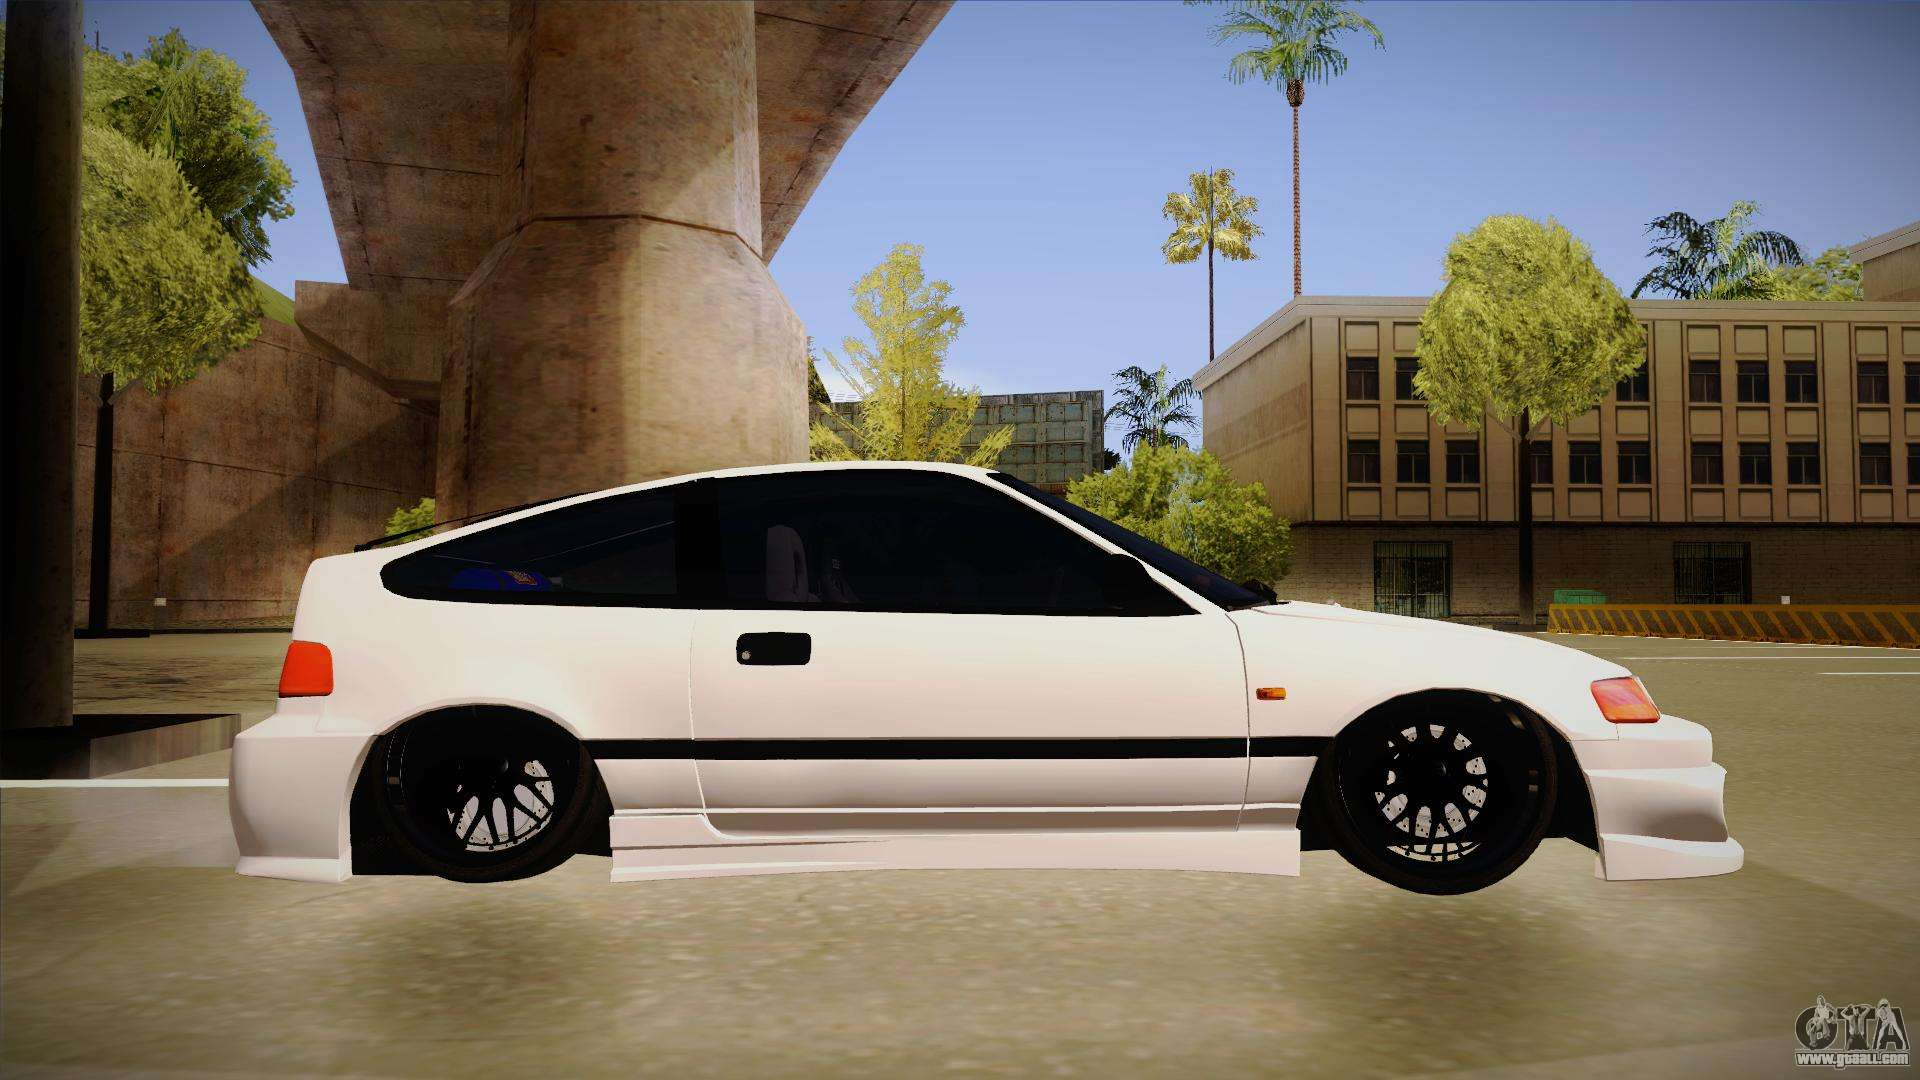 besides Honda Civic Jdm Ep together with Honda Civic Jdm Ep likewise N furthermore Maxresdefault. on honda civic jdm pic